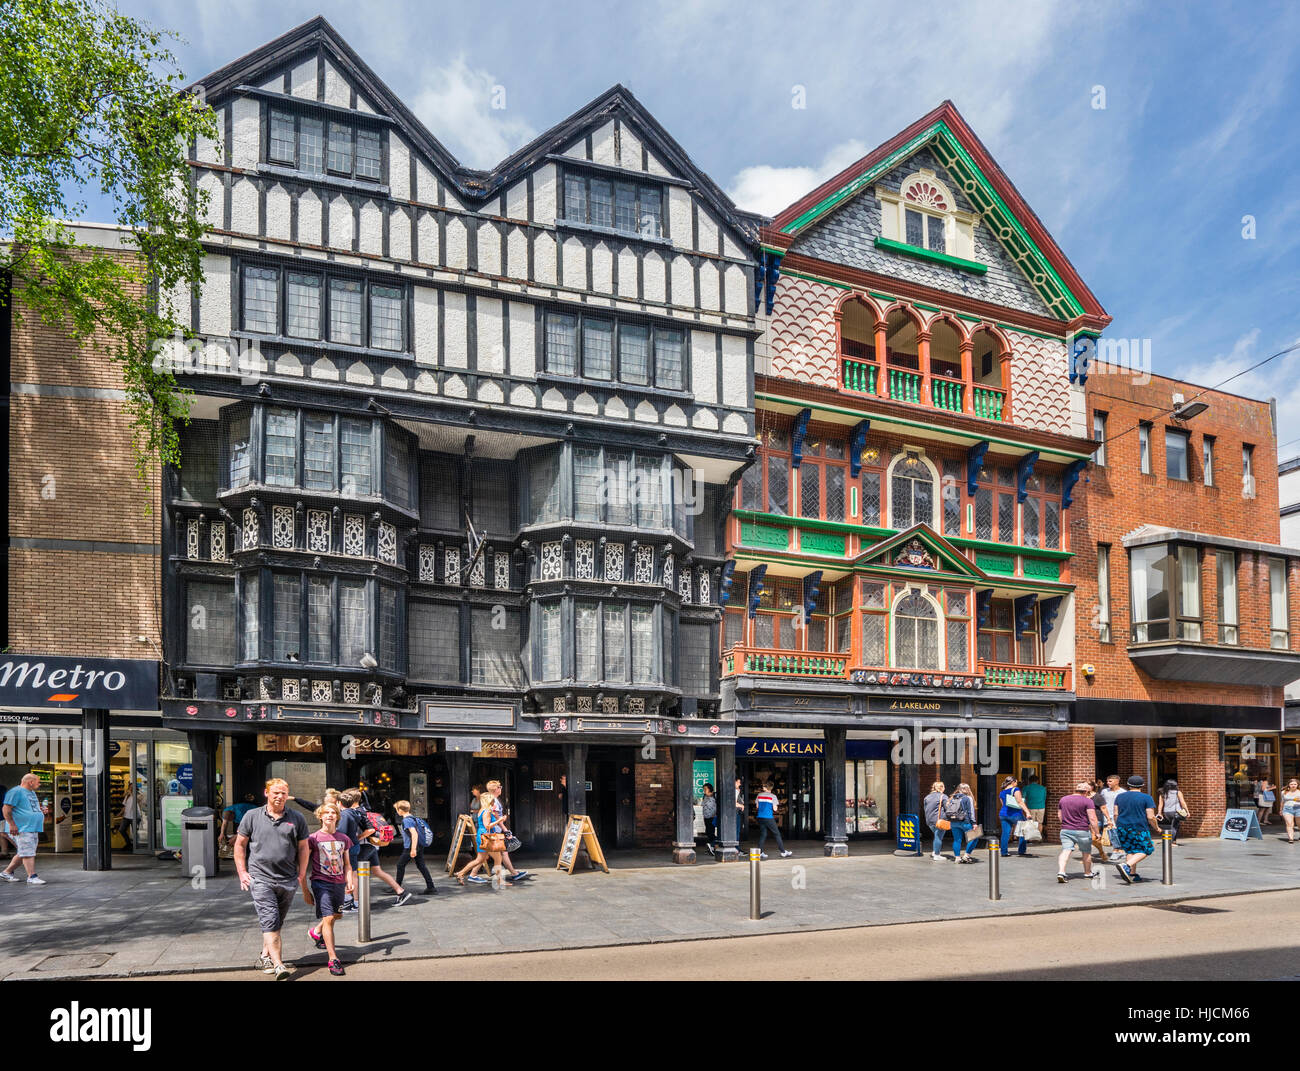 Great Britain, South West England, Devon, Exeter, venerable building facades at Exeter High Street - Stock Image